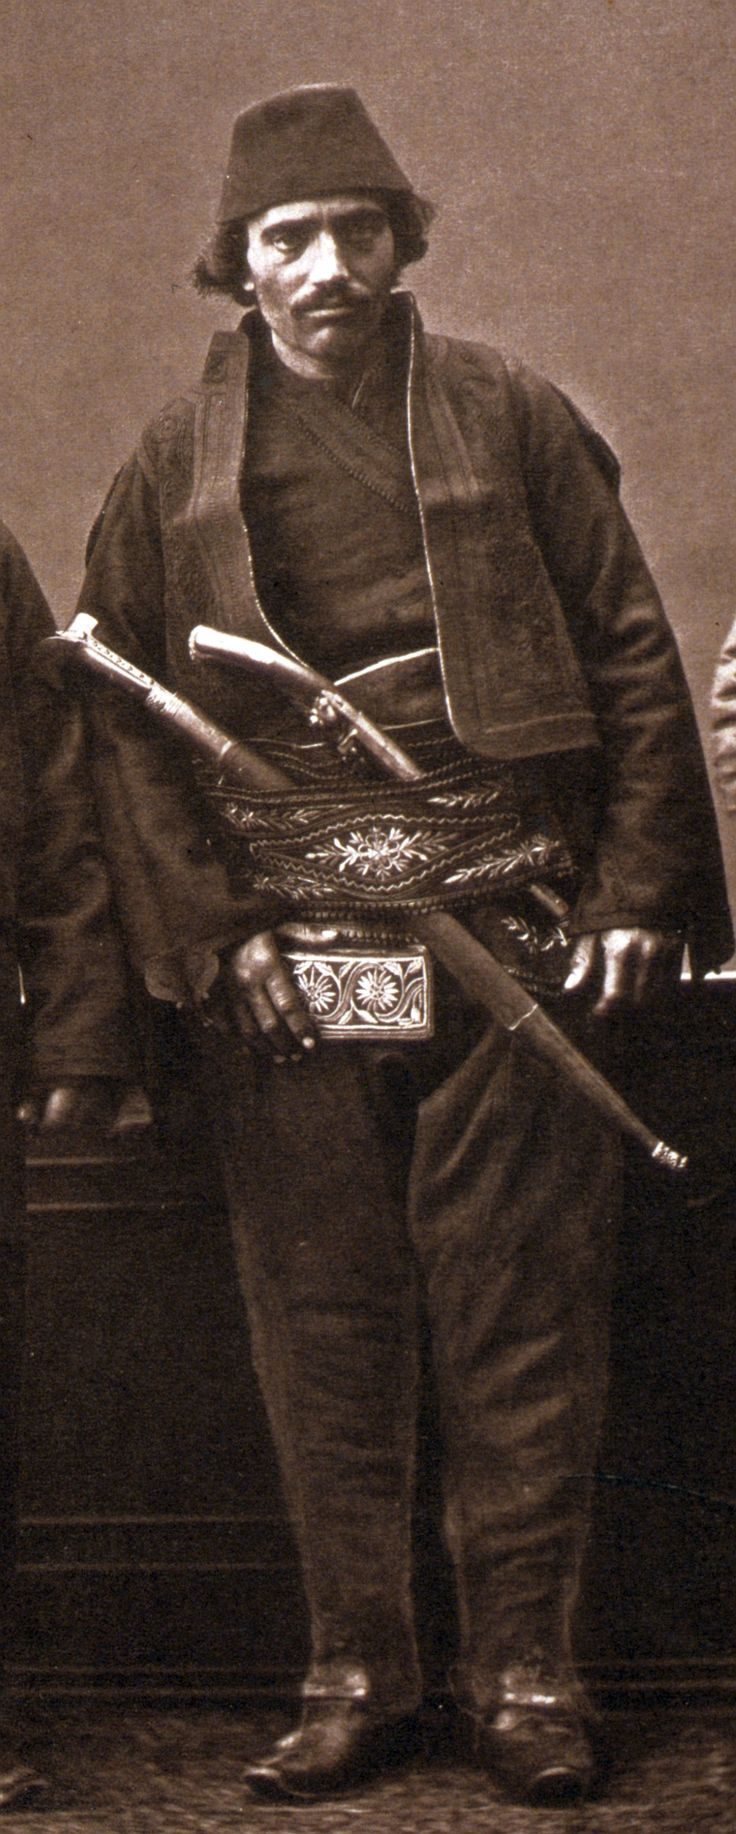 """Ottoman Muslim horseman of Andrinople (Edirne), his weapons belt (silahlik) holds a yatagan and a pistol (kuber). From:Les costumes populaires de la Turquie en 1873, 74 photographic plates by Pascal Sebah, published by the Imperial Ottoman Commission for the """"Exposition Universelle"""" of Vienna in 1873."""